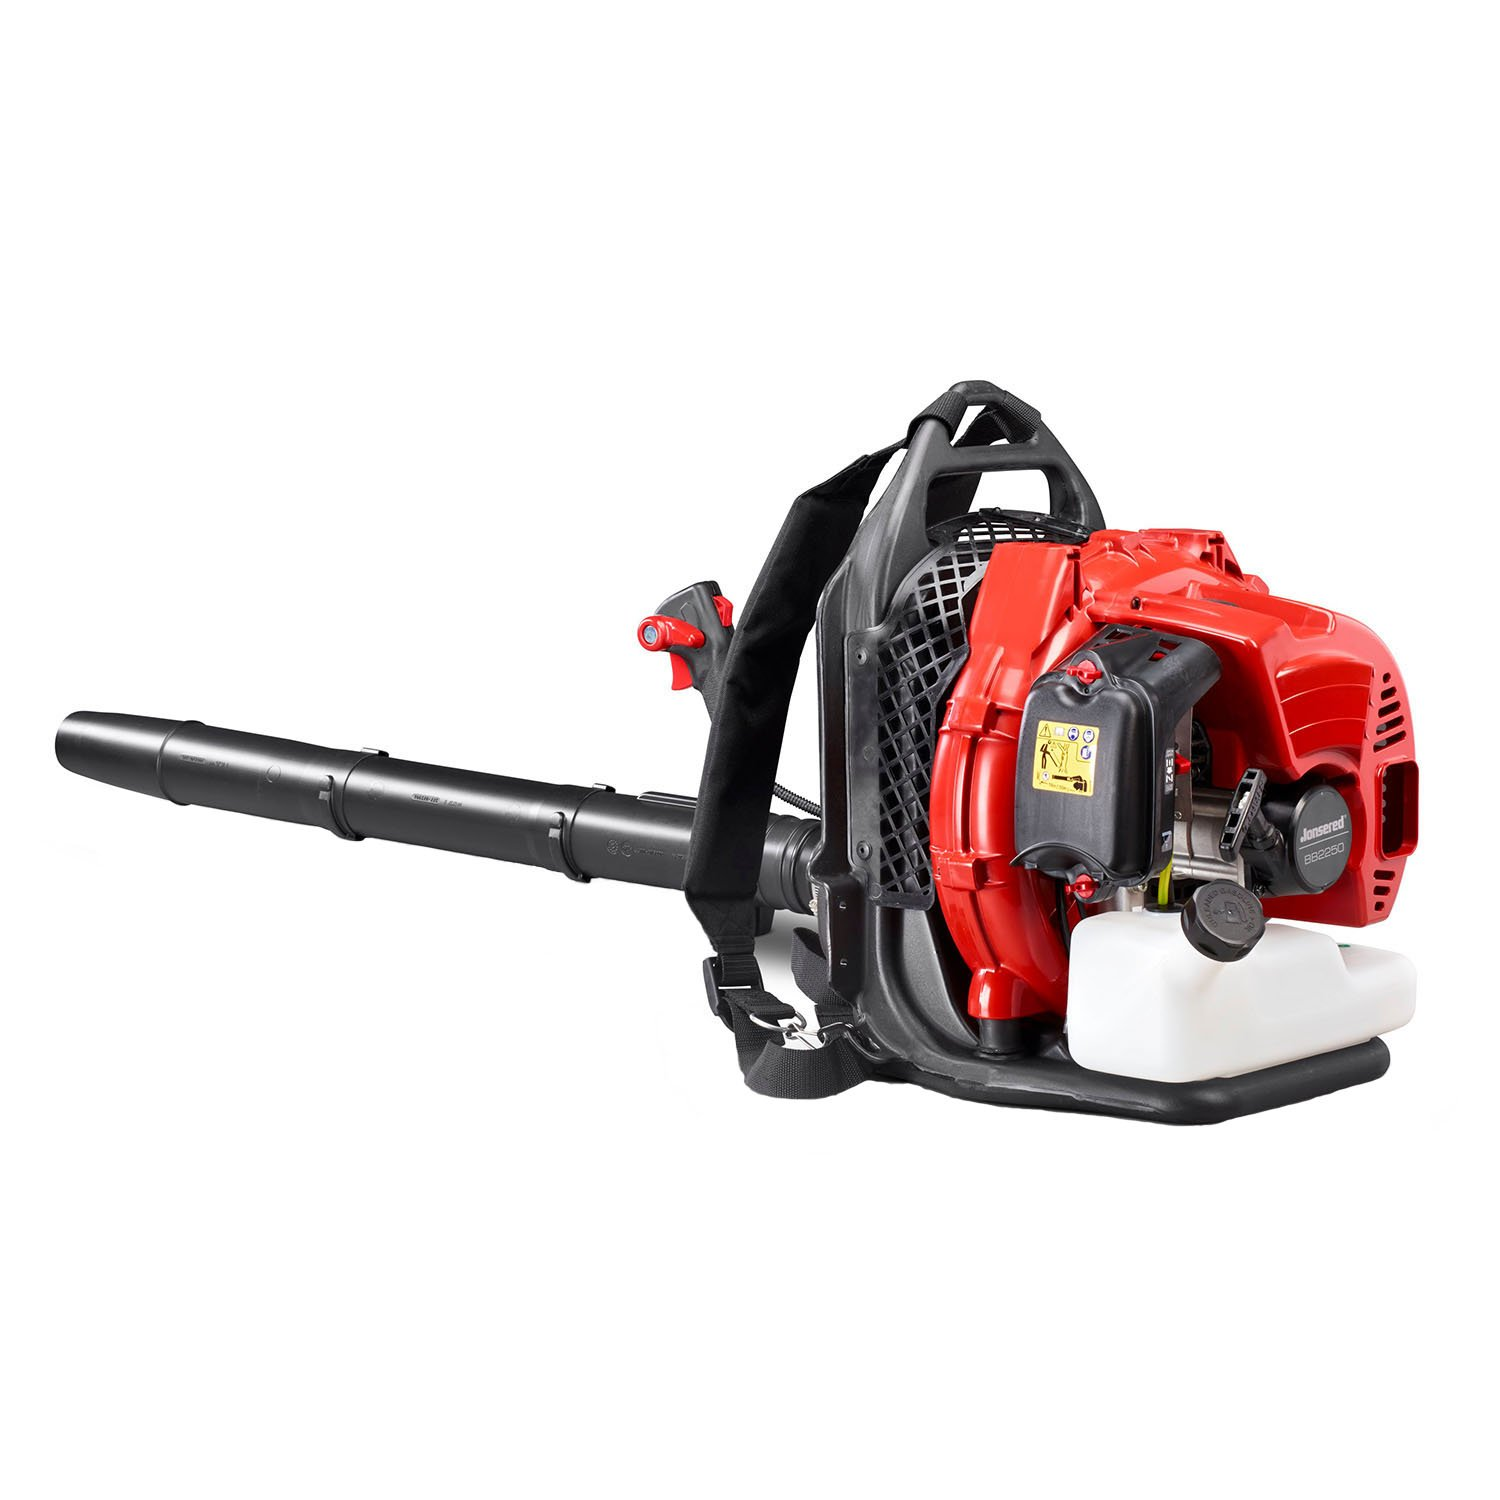 Amazon.com : Jonsered BB2250, 50.2cc 2-Cycle Gas 692 CFM 251 MPH Backpack Leaf  Blower : Garden & Outdoor